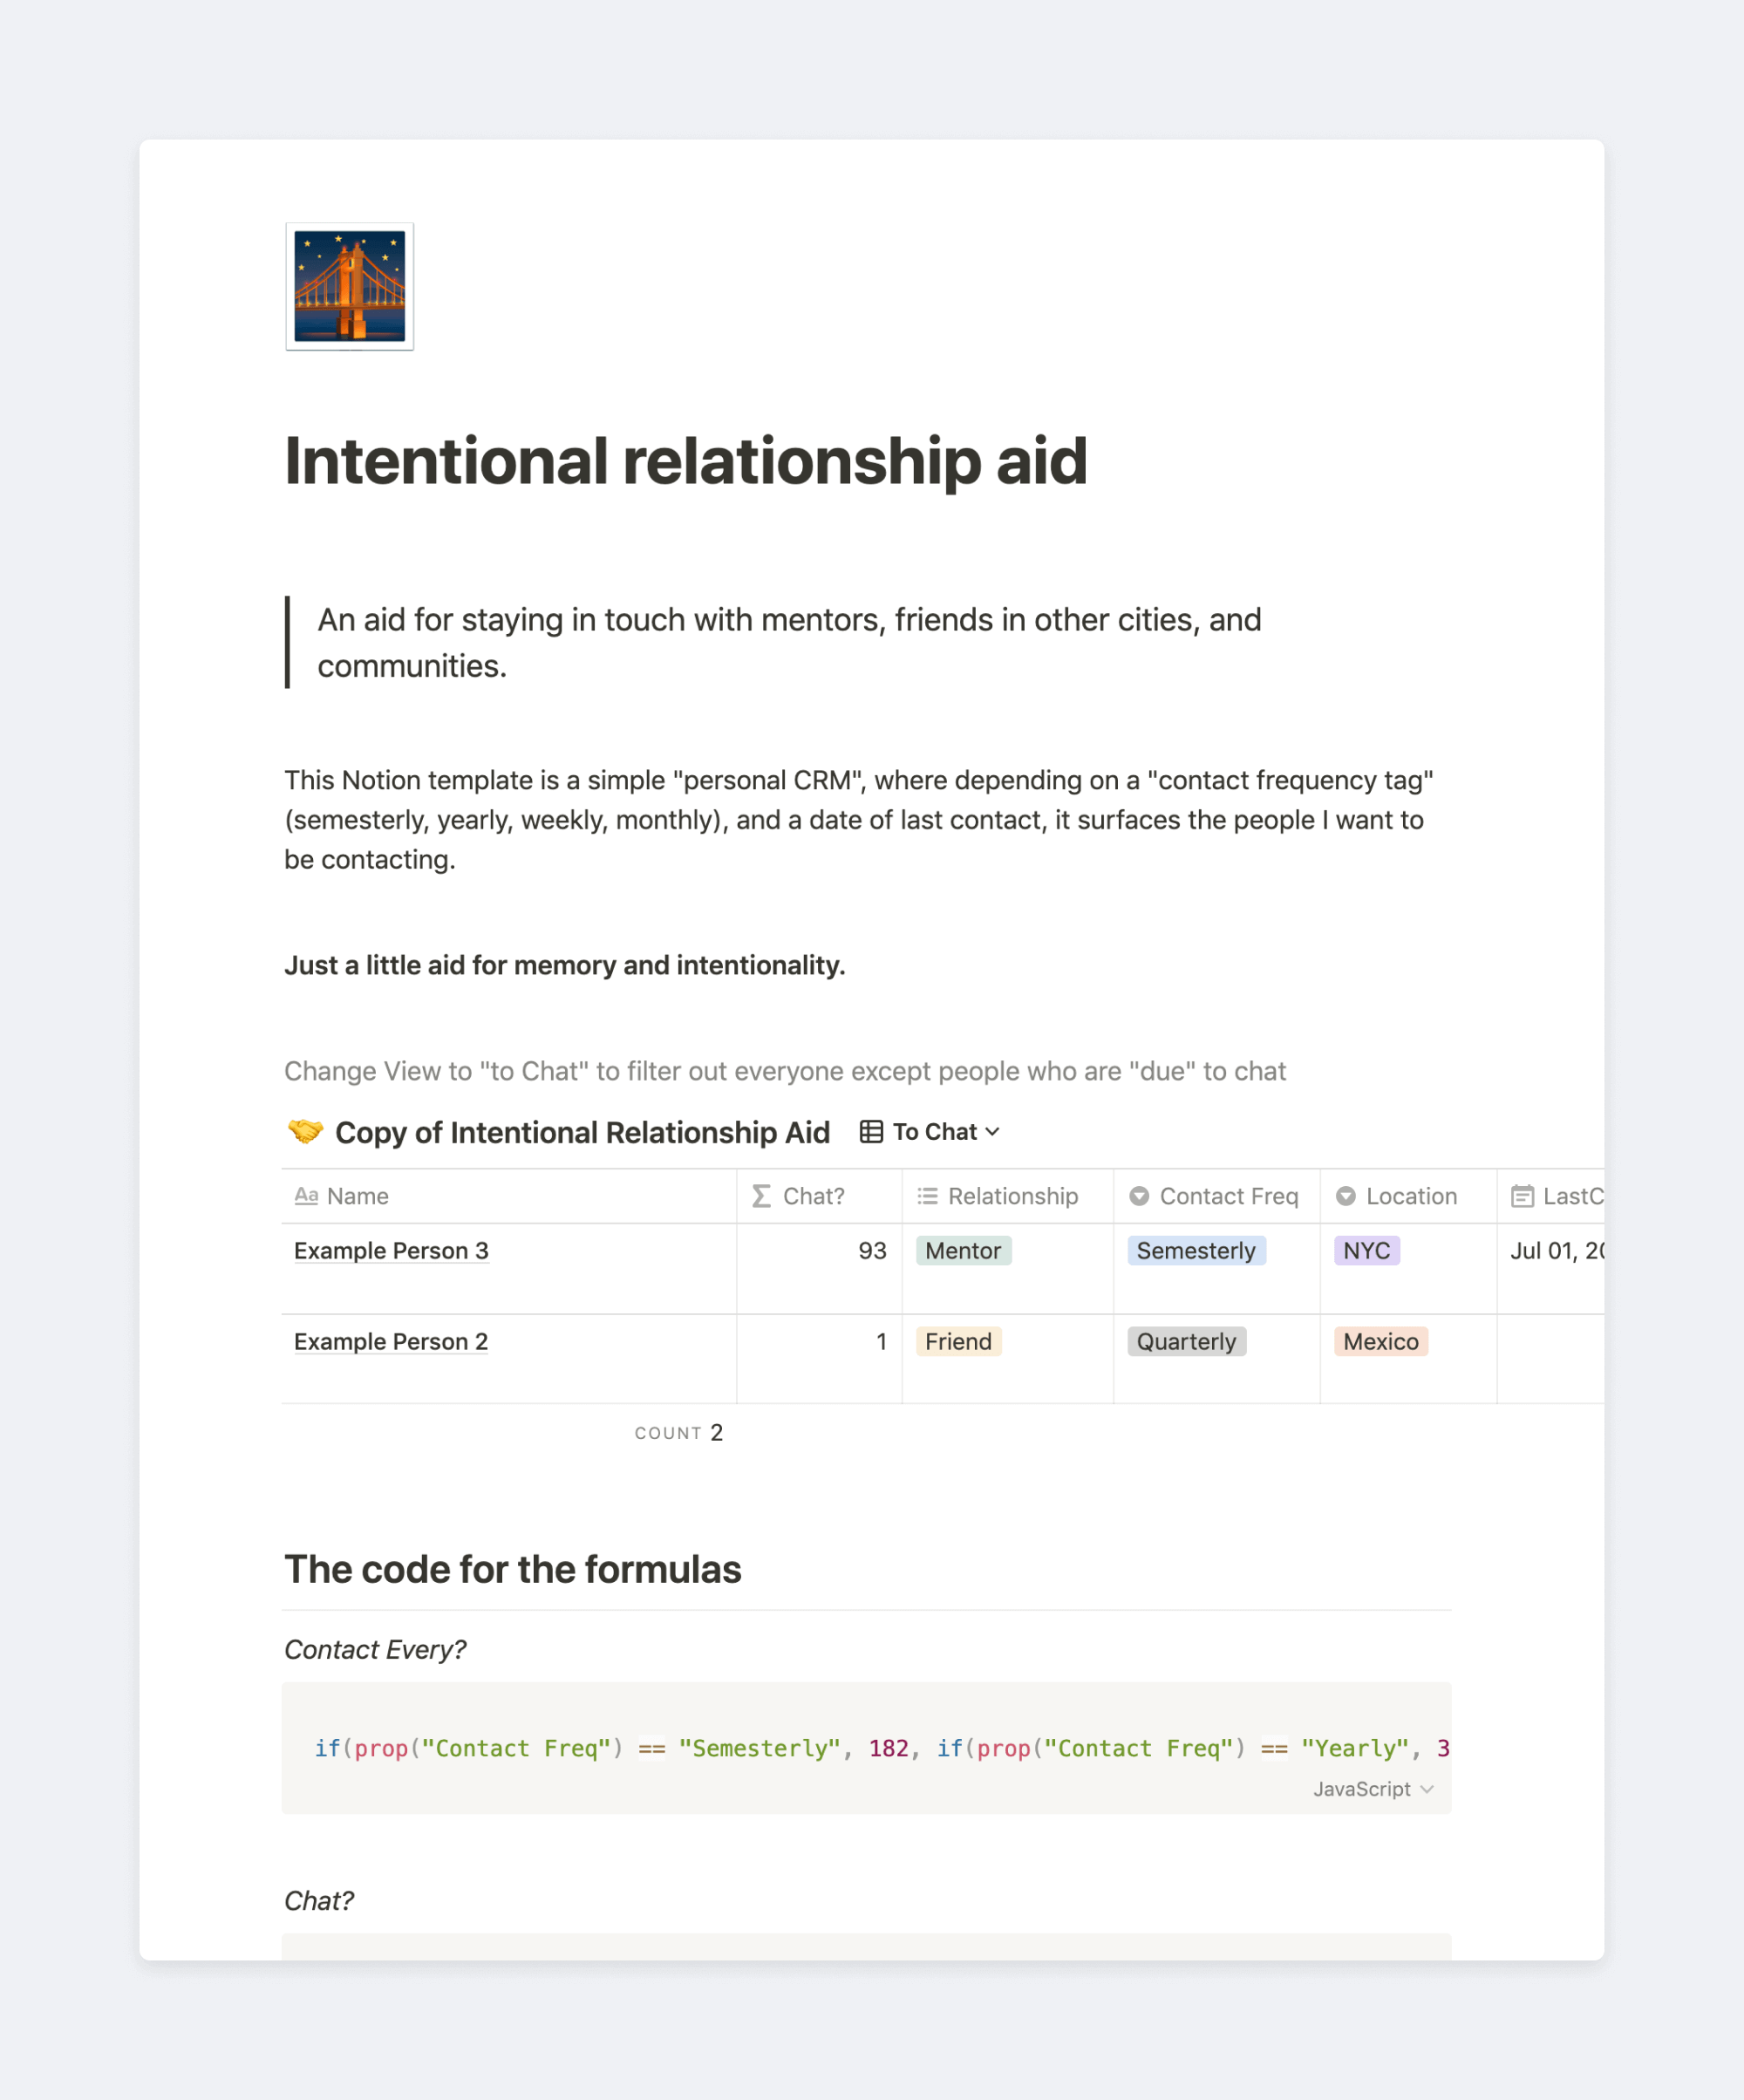 Intentional relationship aid